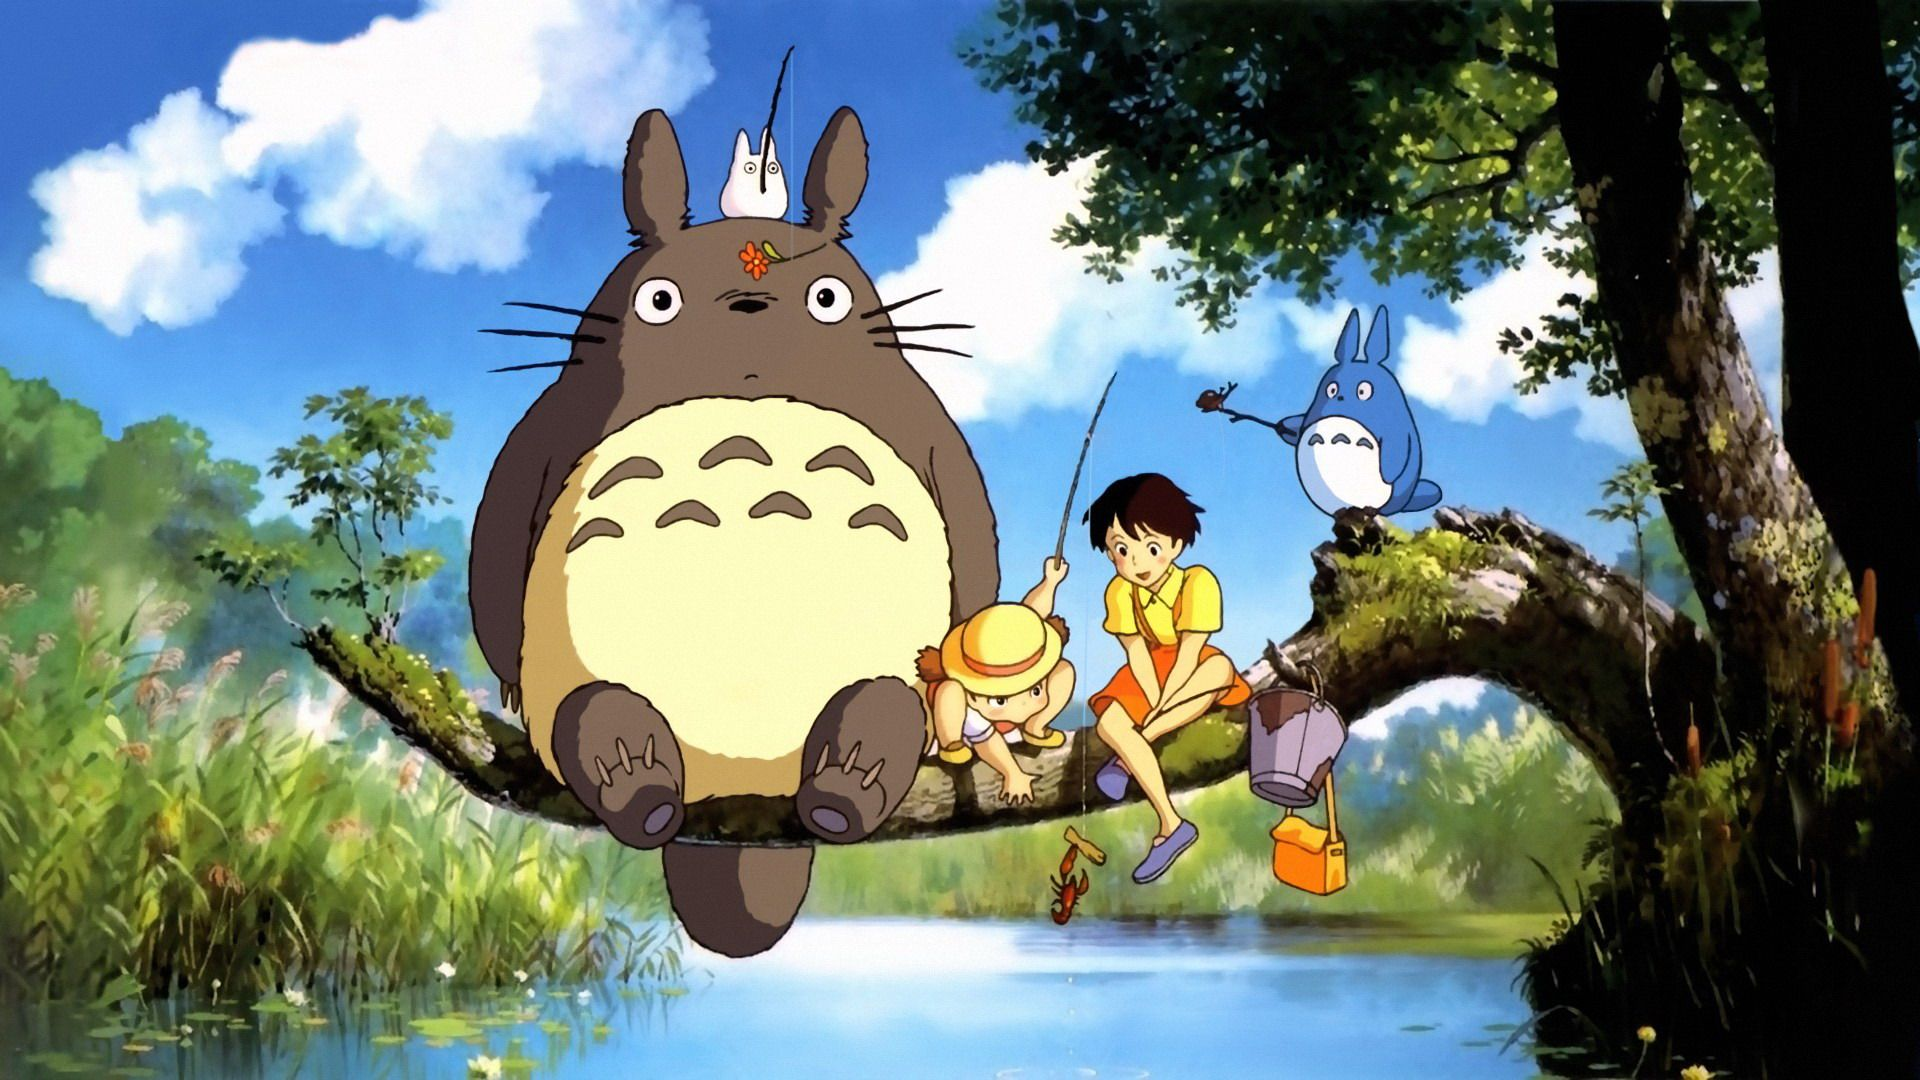 Images of My Neighbor Totoro | 1920x1080